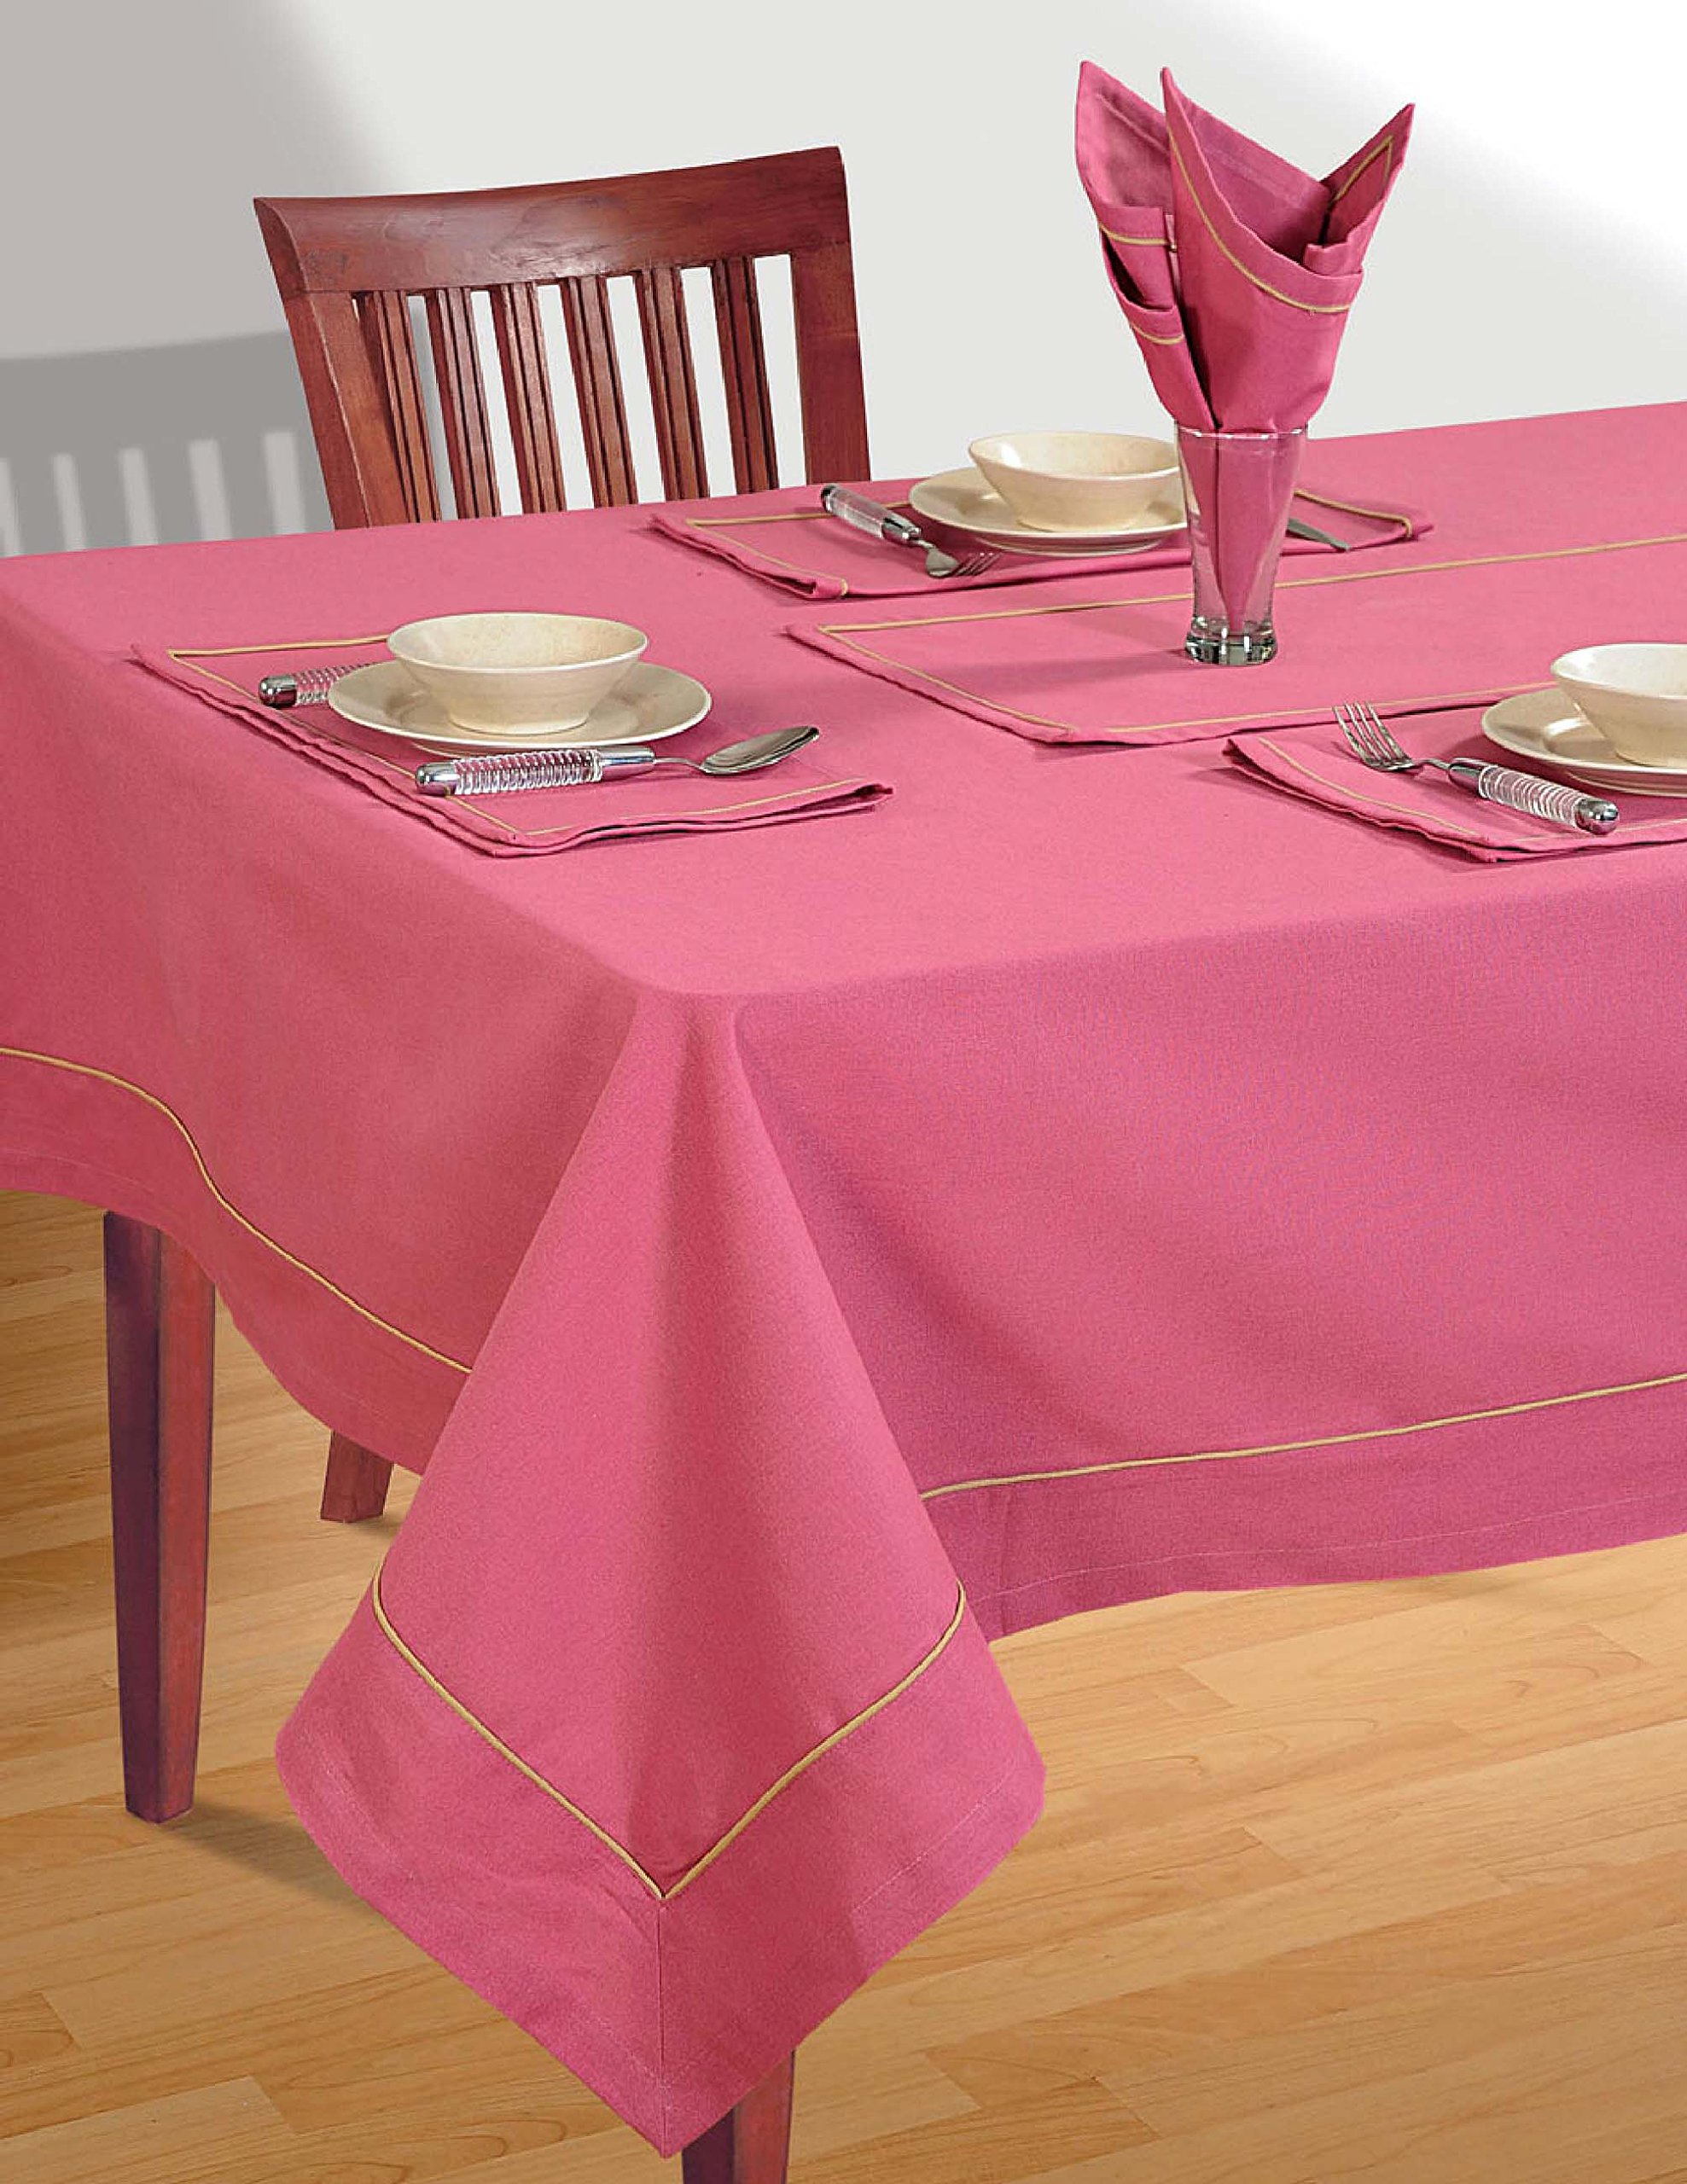 ShalinIndia Dusty Rose Table cloth Spring Decorations for Home Size- 140 X 56 inches